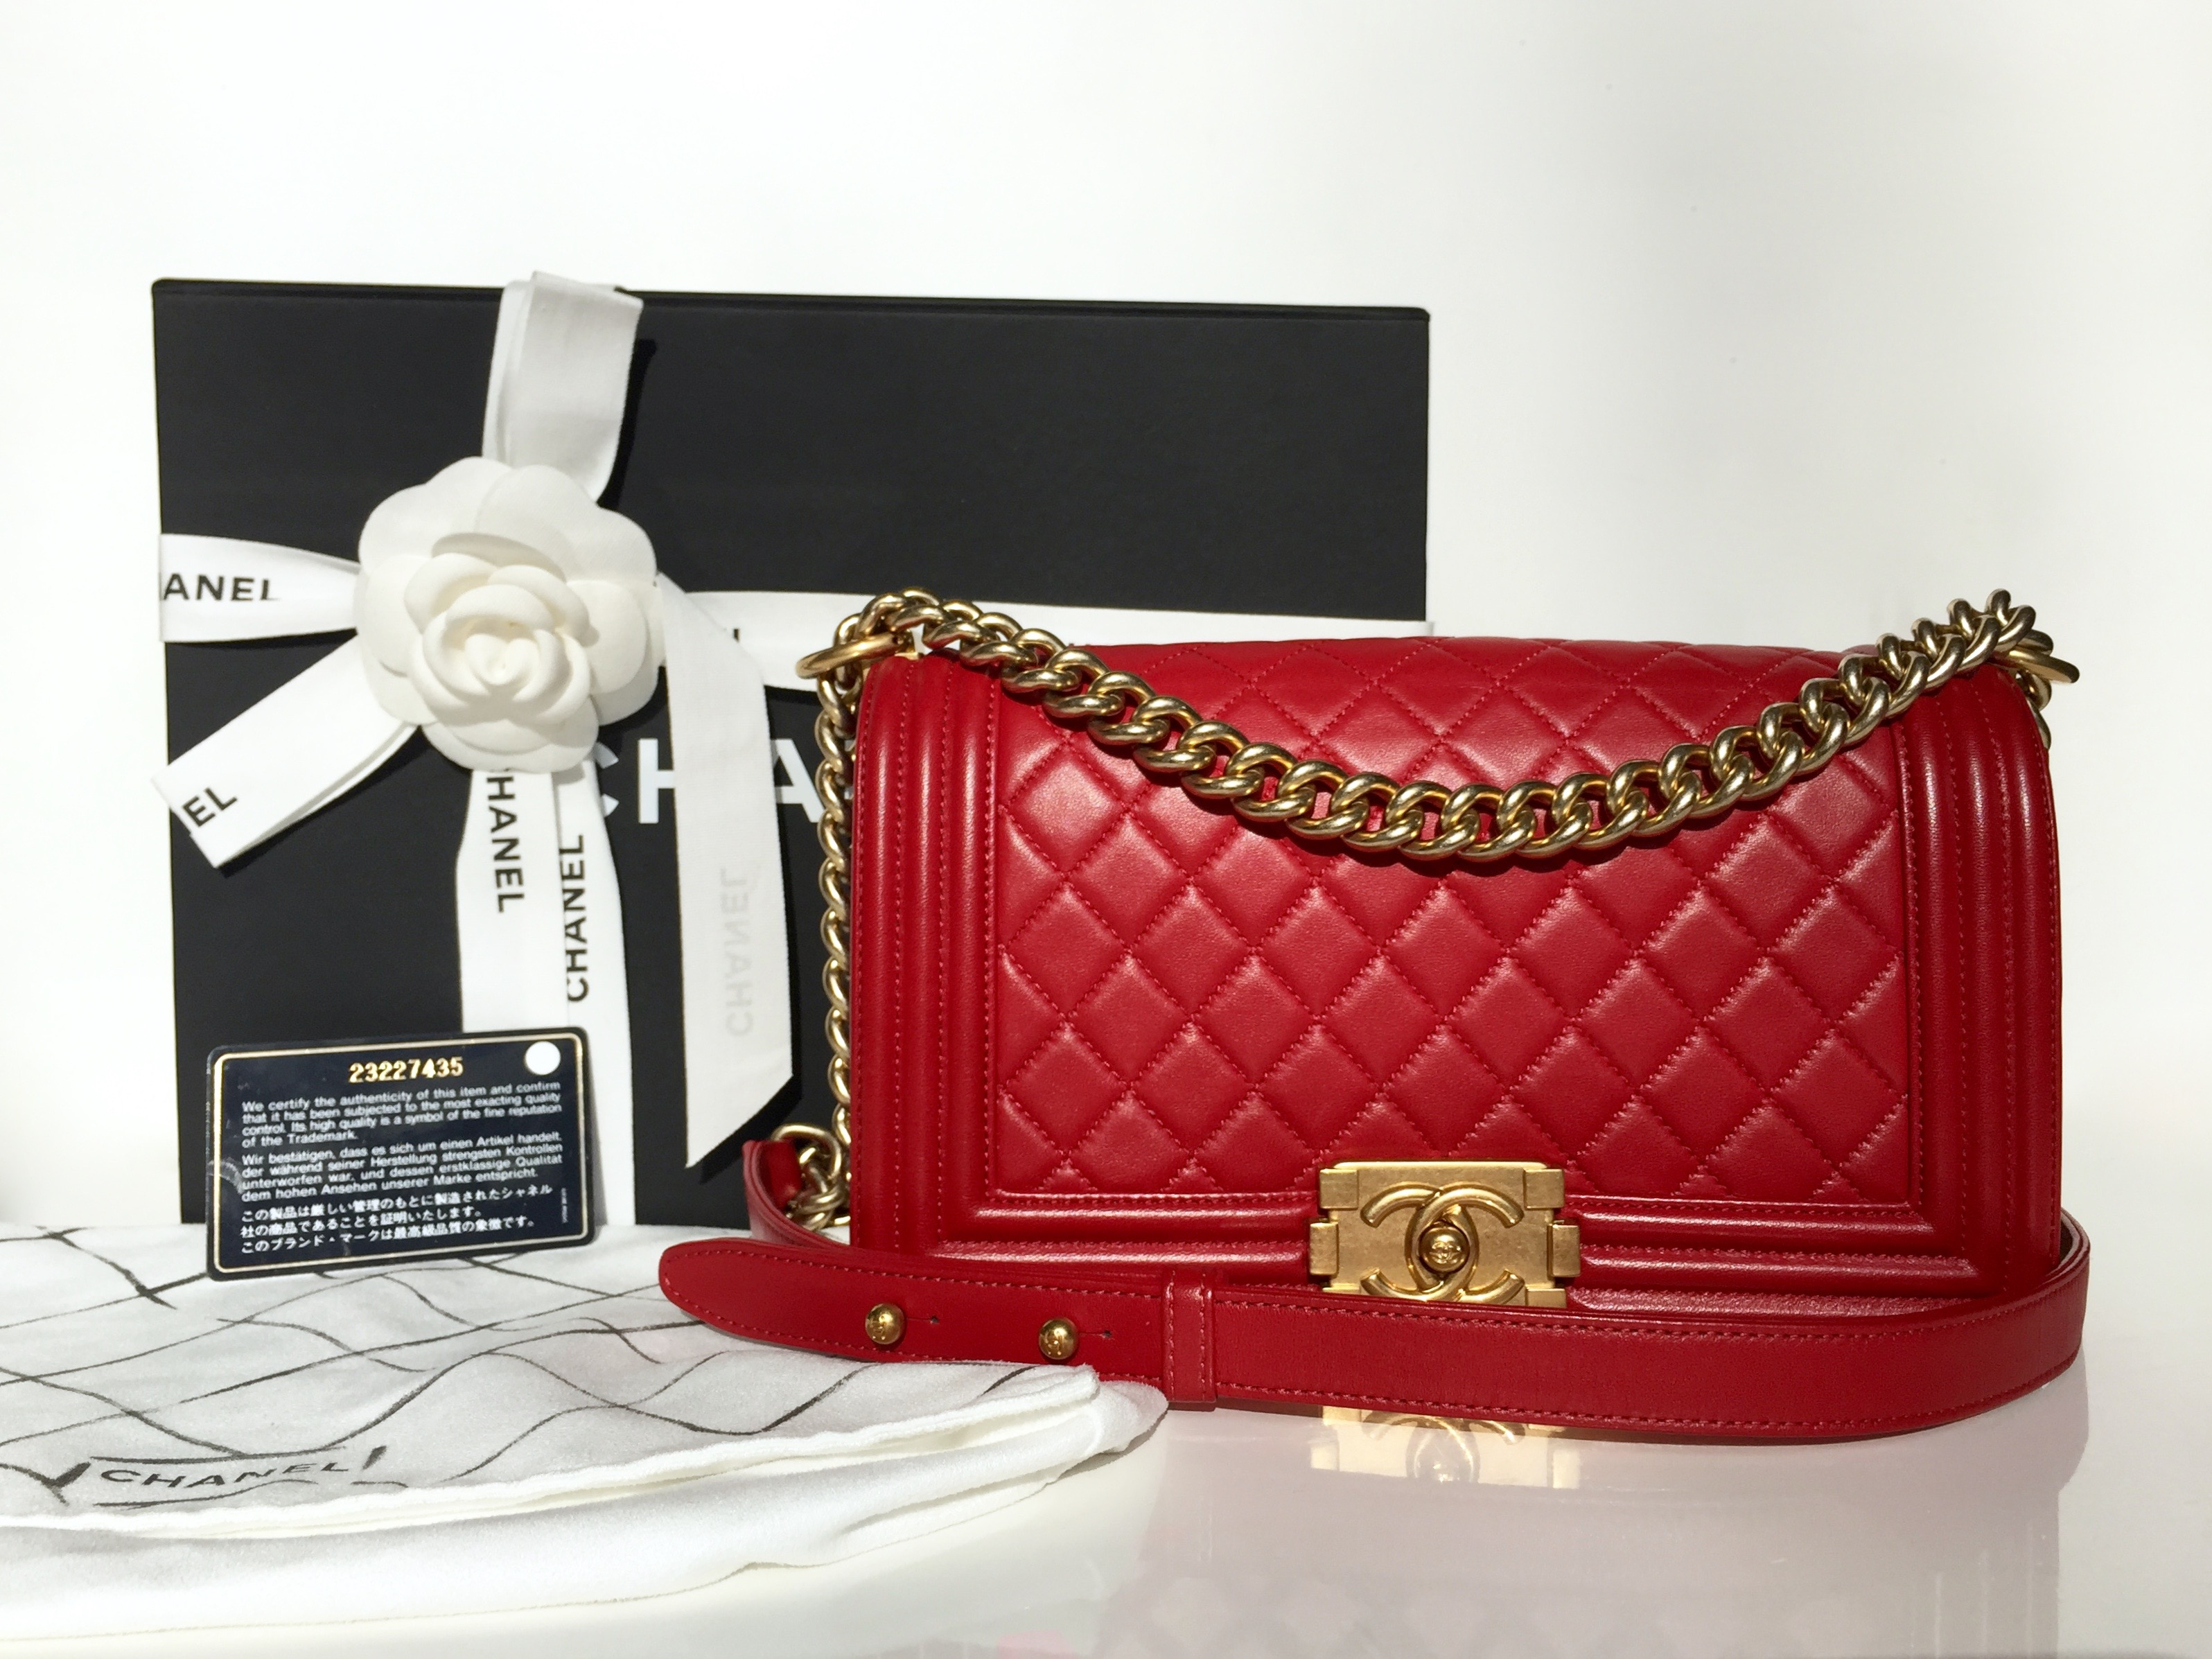 cf49e8dca3b0 Home/Chanel/CHANEL Old Medium Boy Red Lambskin Brushed Gold Hardware 2016.  ; 